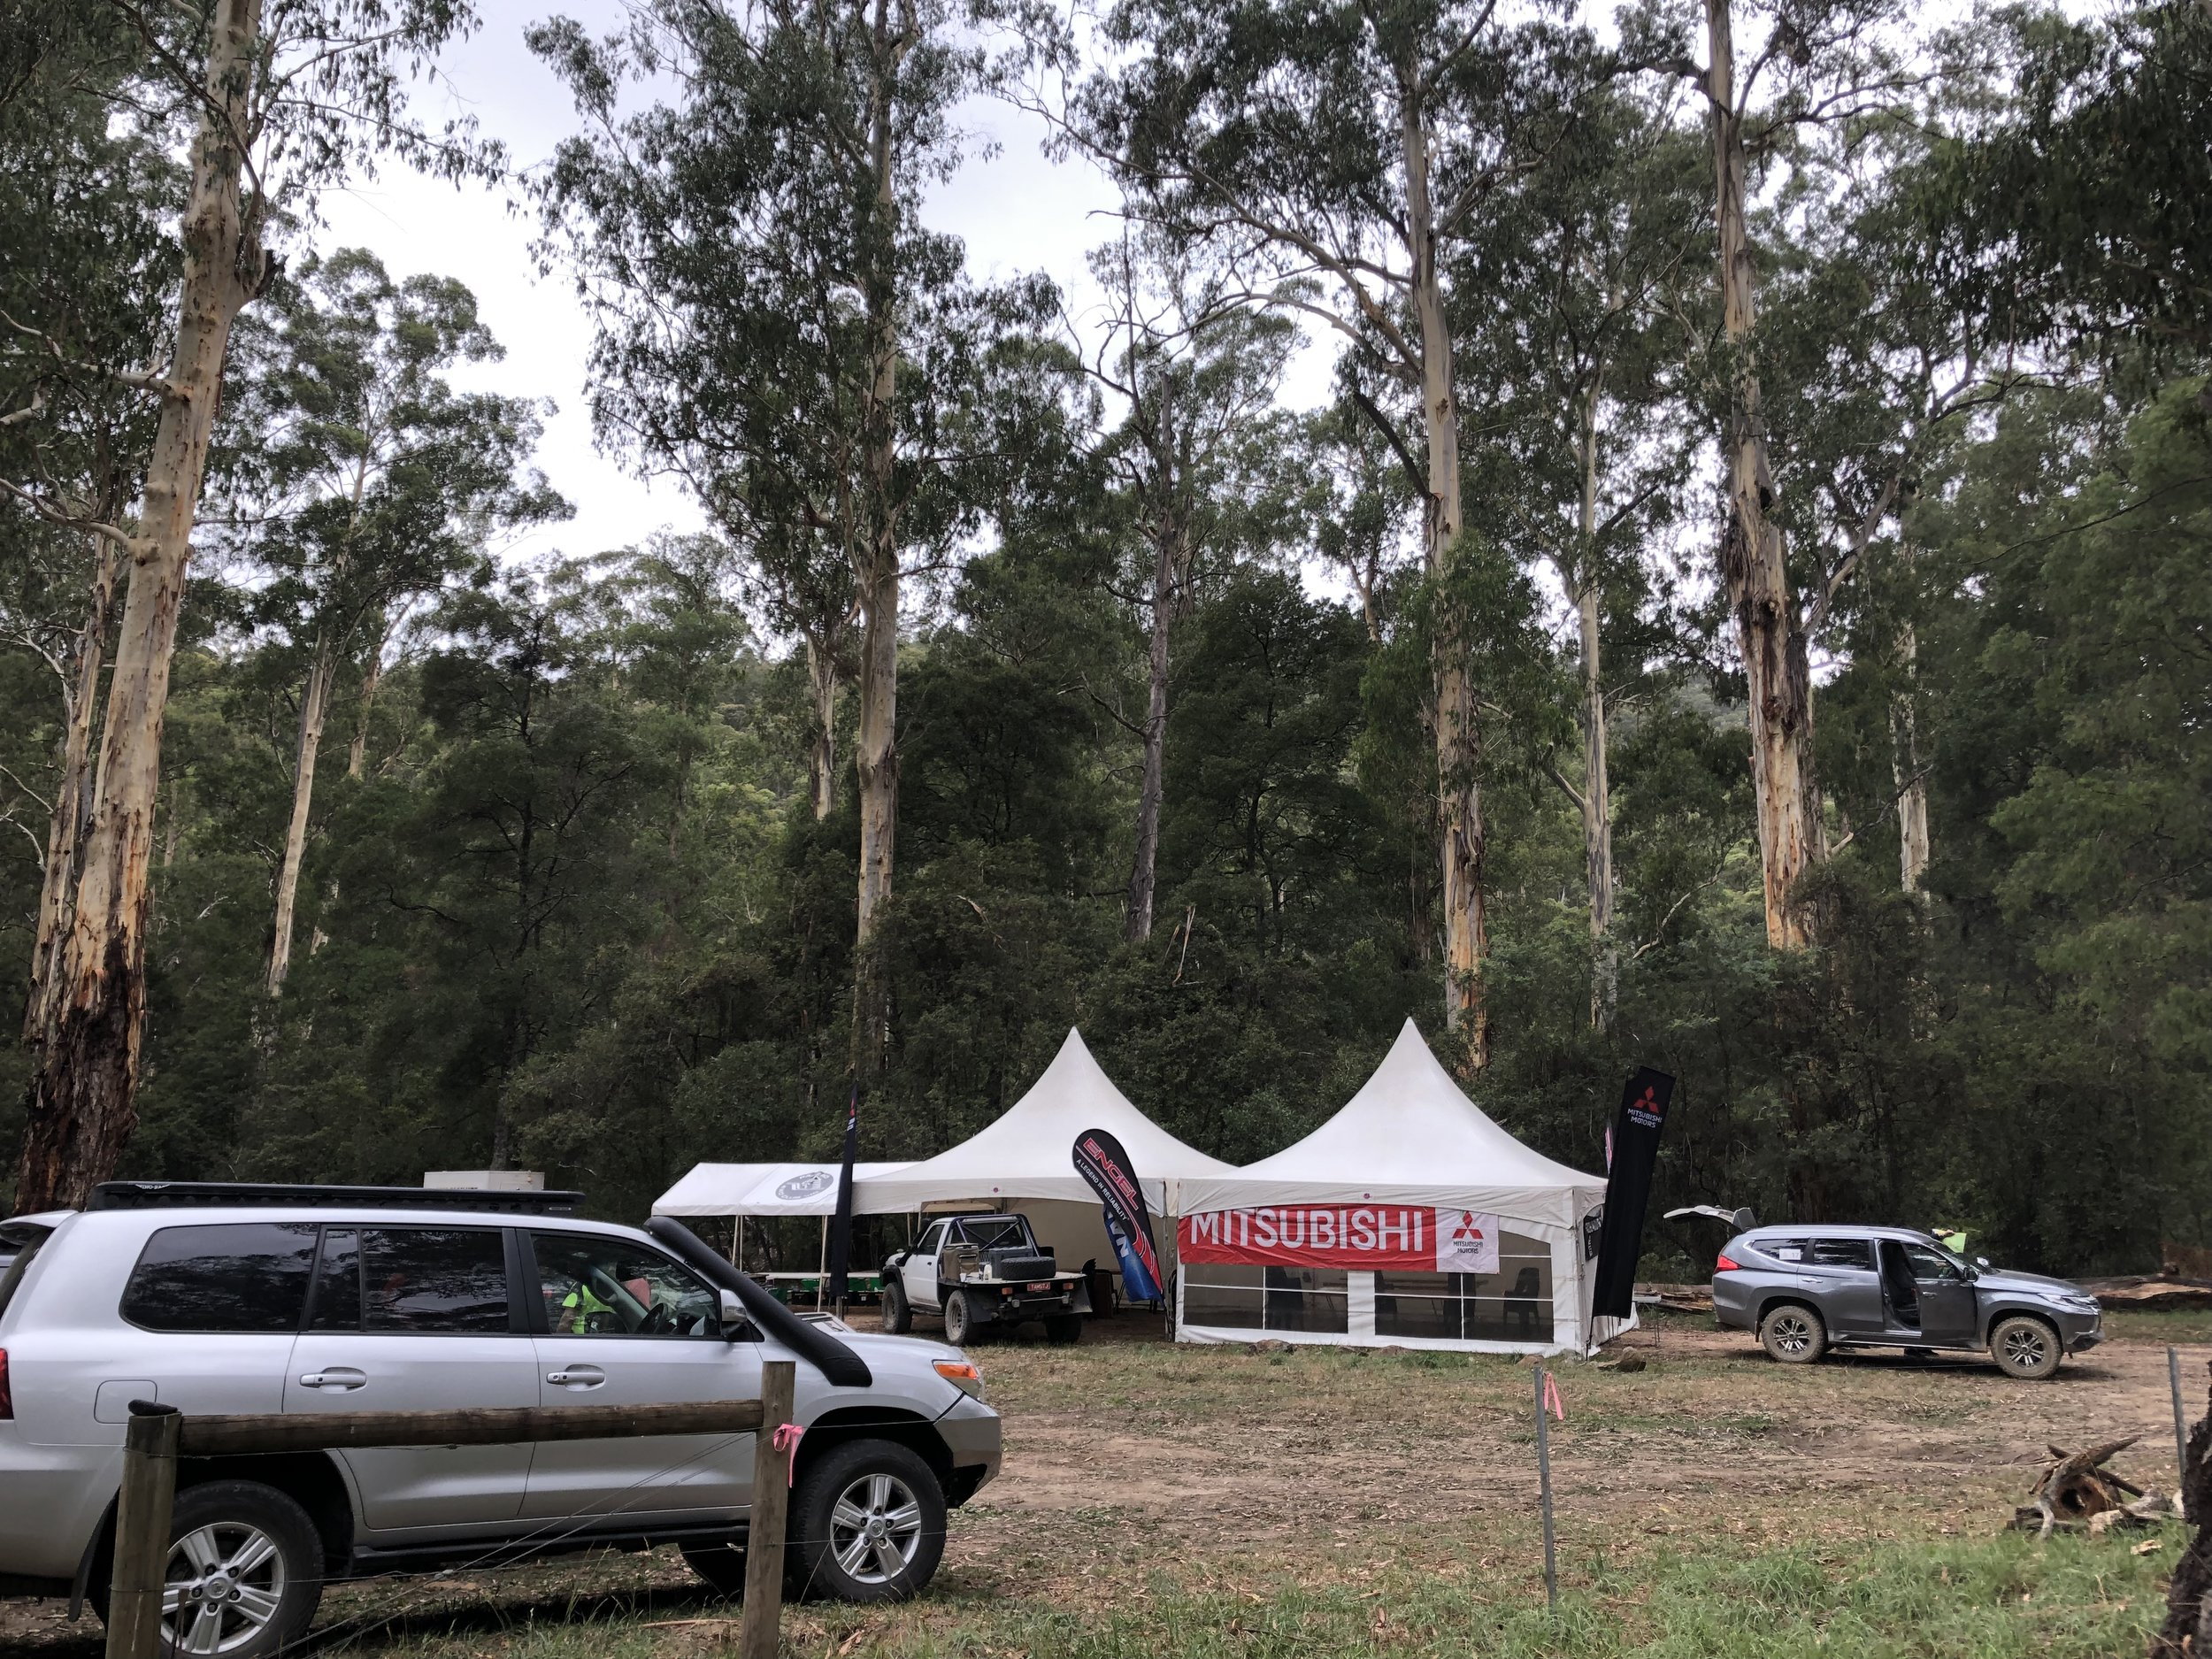 Pajero Challenge 2019 - supported by WICEN Victoria